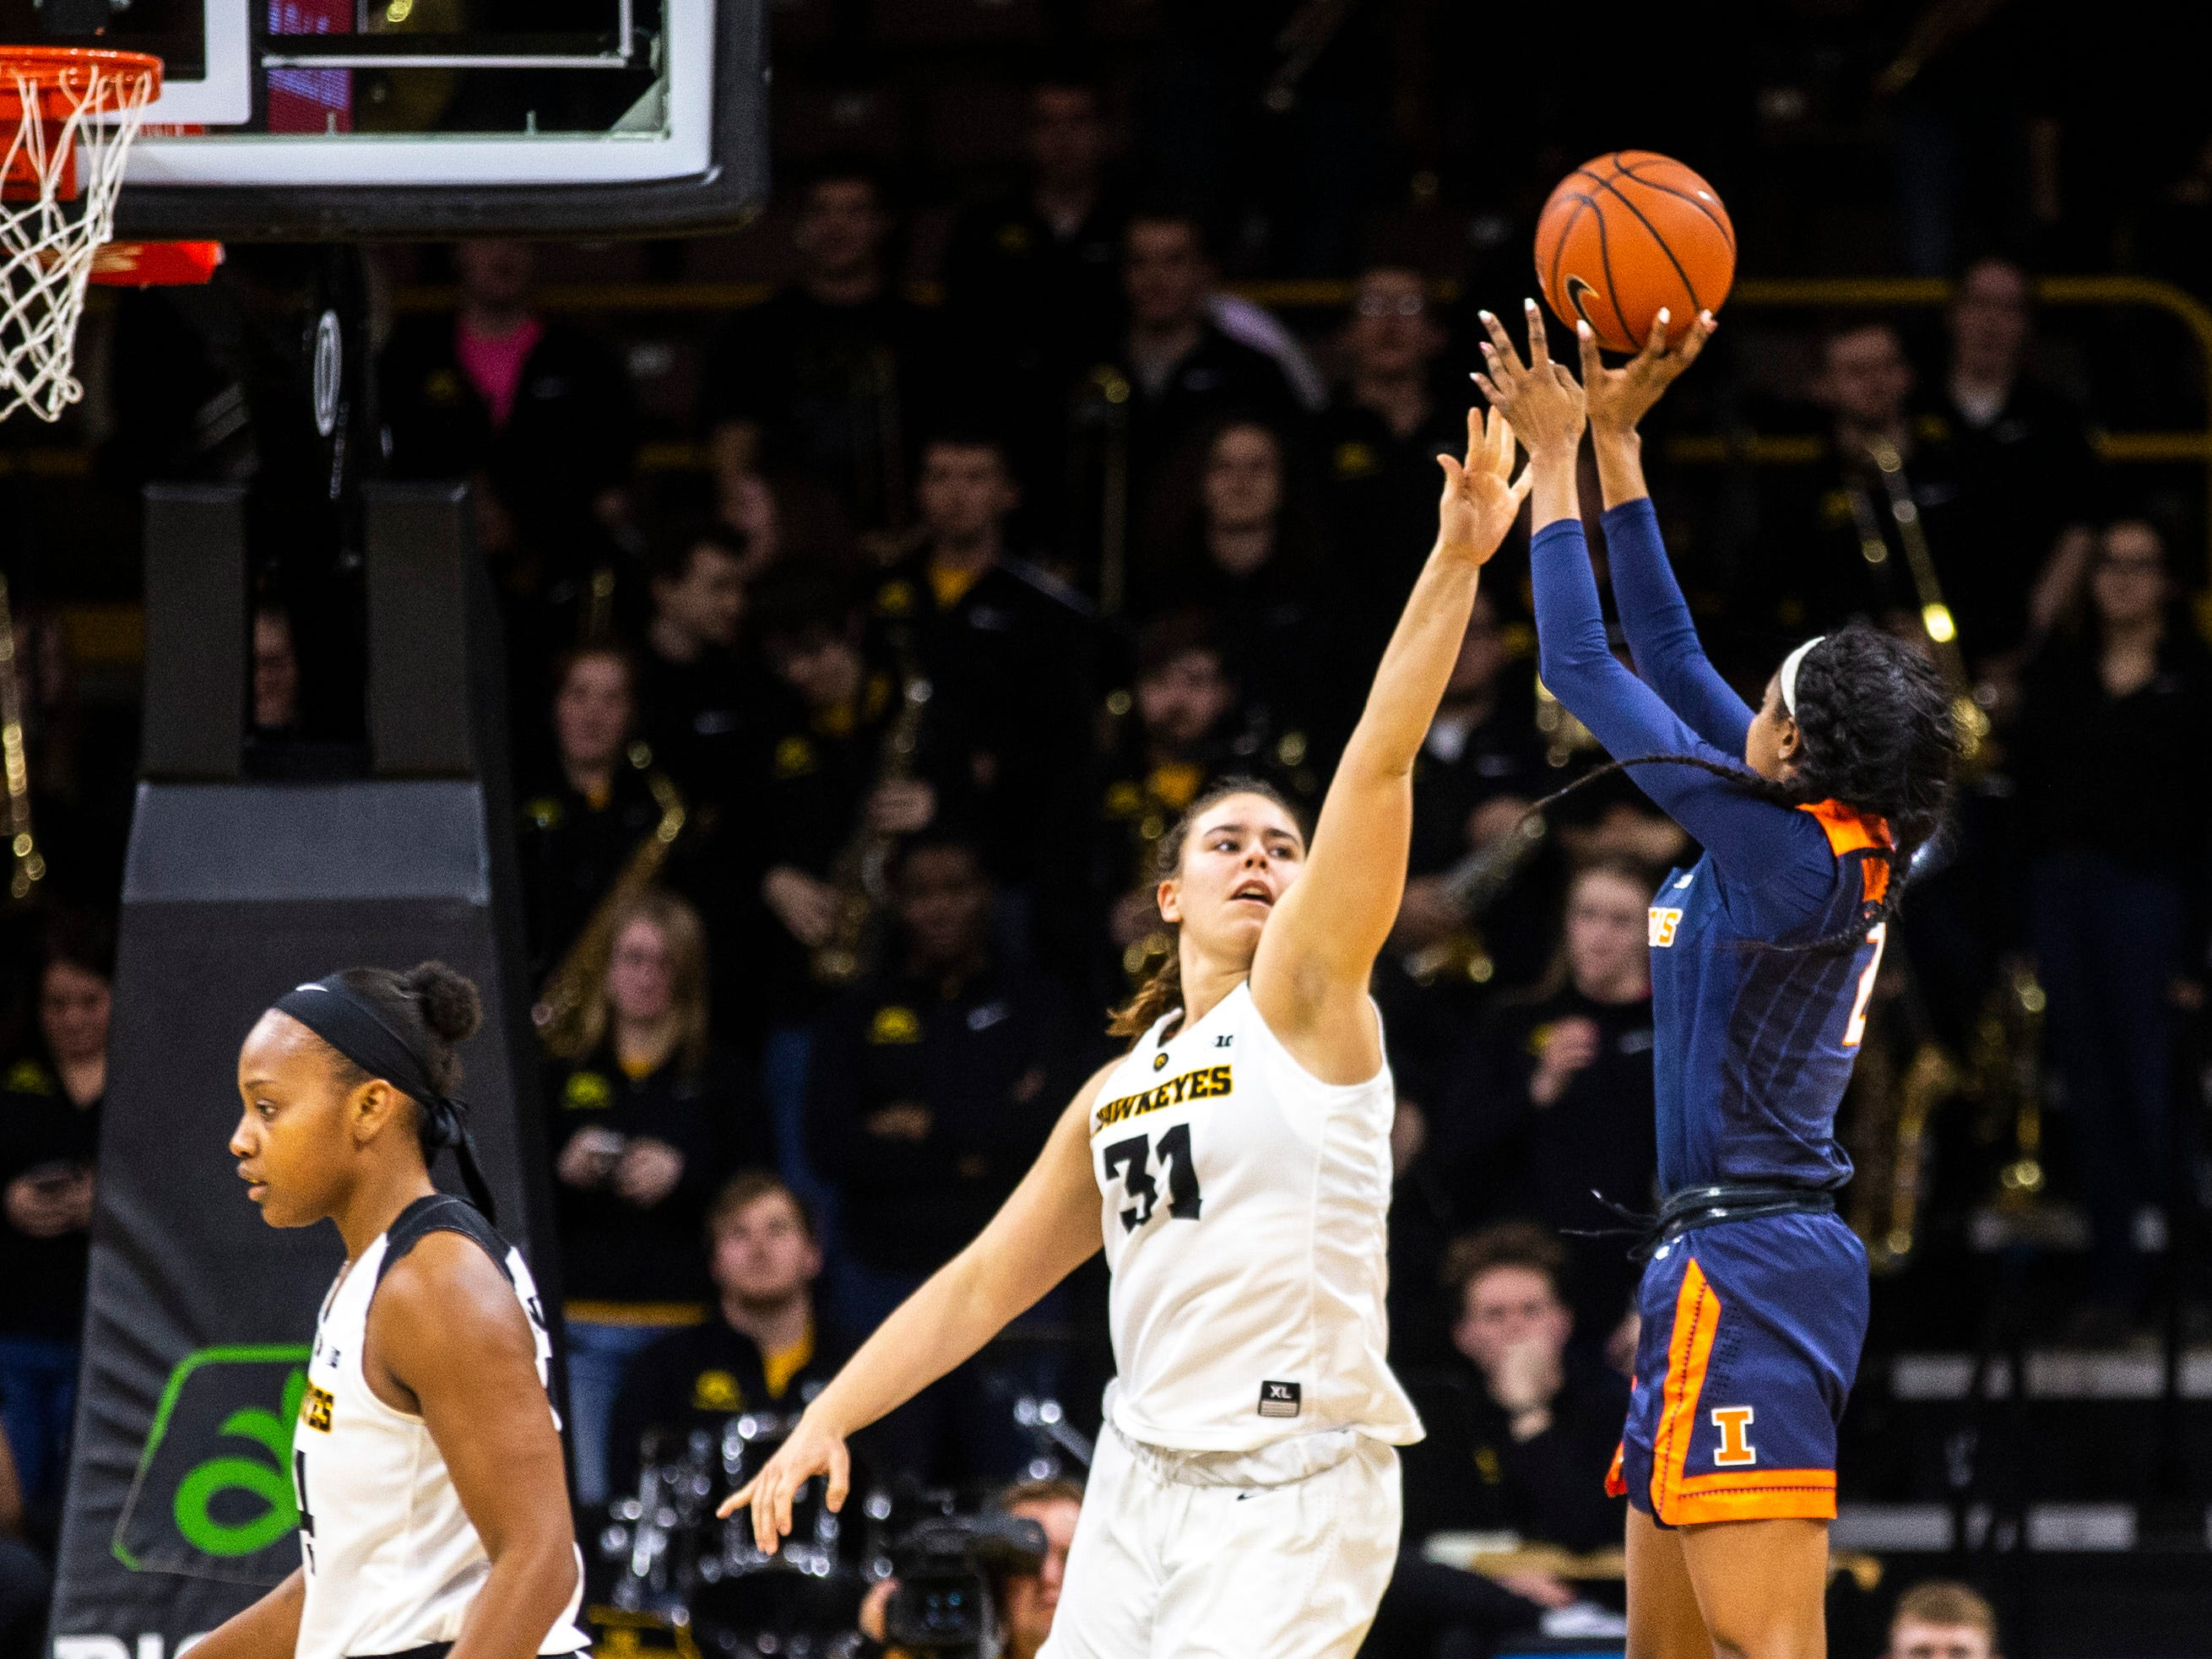 Illinois forward Lyric Robins (2) shoots while Iowa's Paula Valino Ramos (31) defends during a NCAA Big Ten Conference women's basketball game on Thursday, Feb. 14, 2019 at Carver-Hawkeye Arena in Iowa City, Iowa.